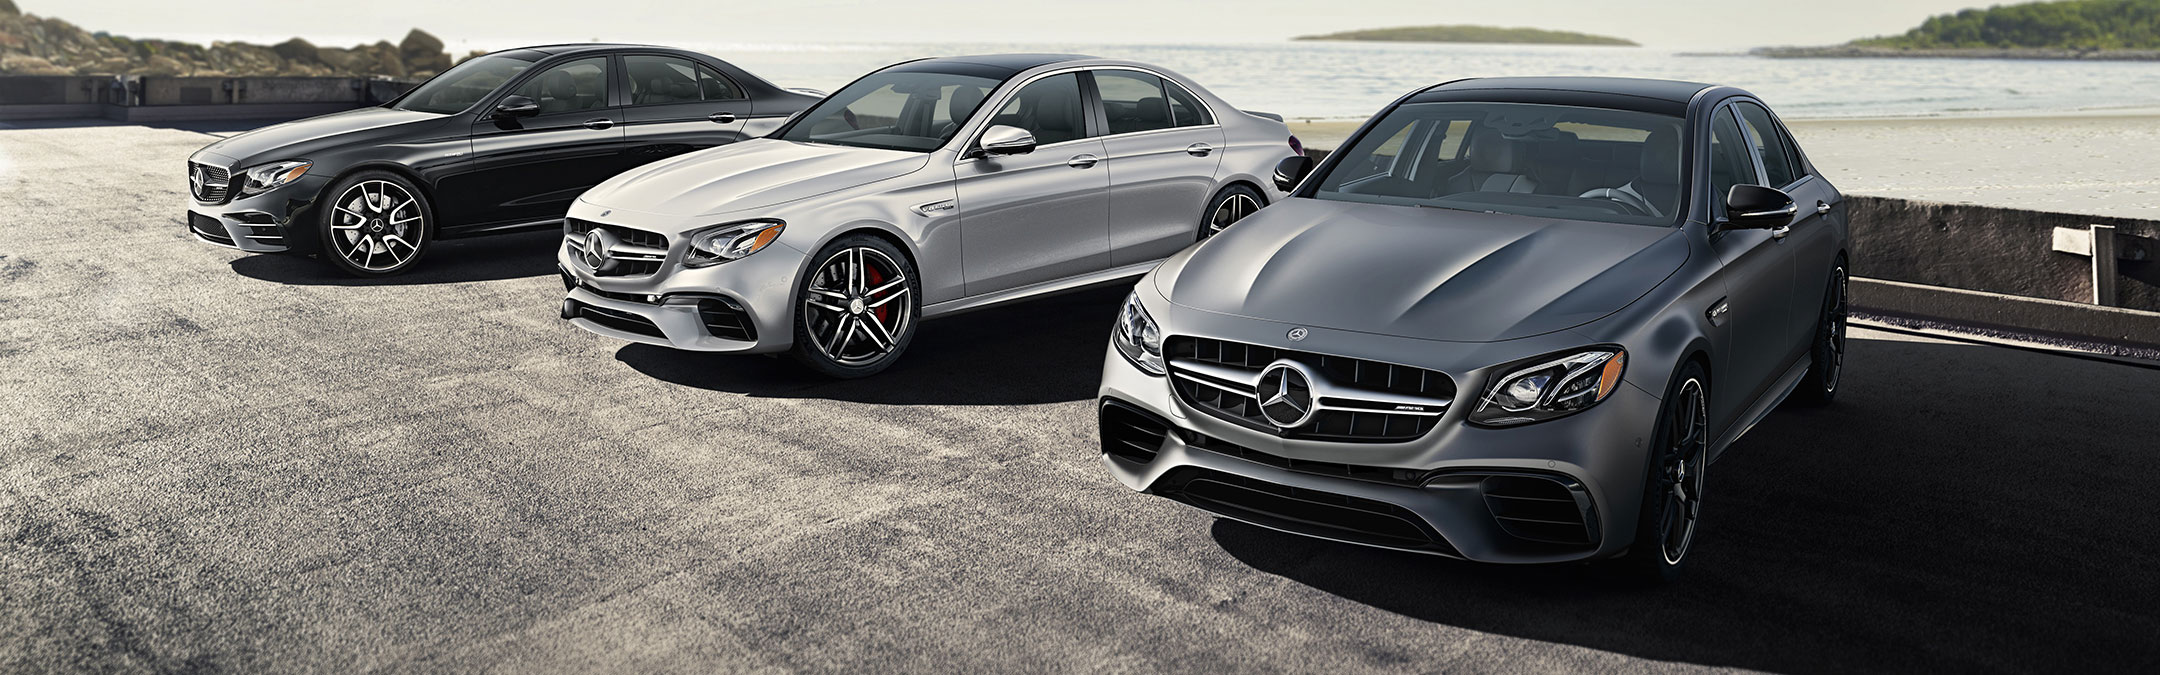 Mercedes amg e 43 and e 63 s sedans mercedes benz of for Mercedes benz sugarland